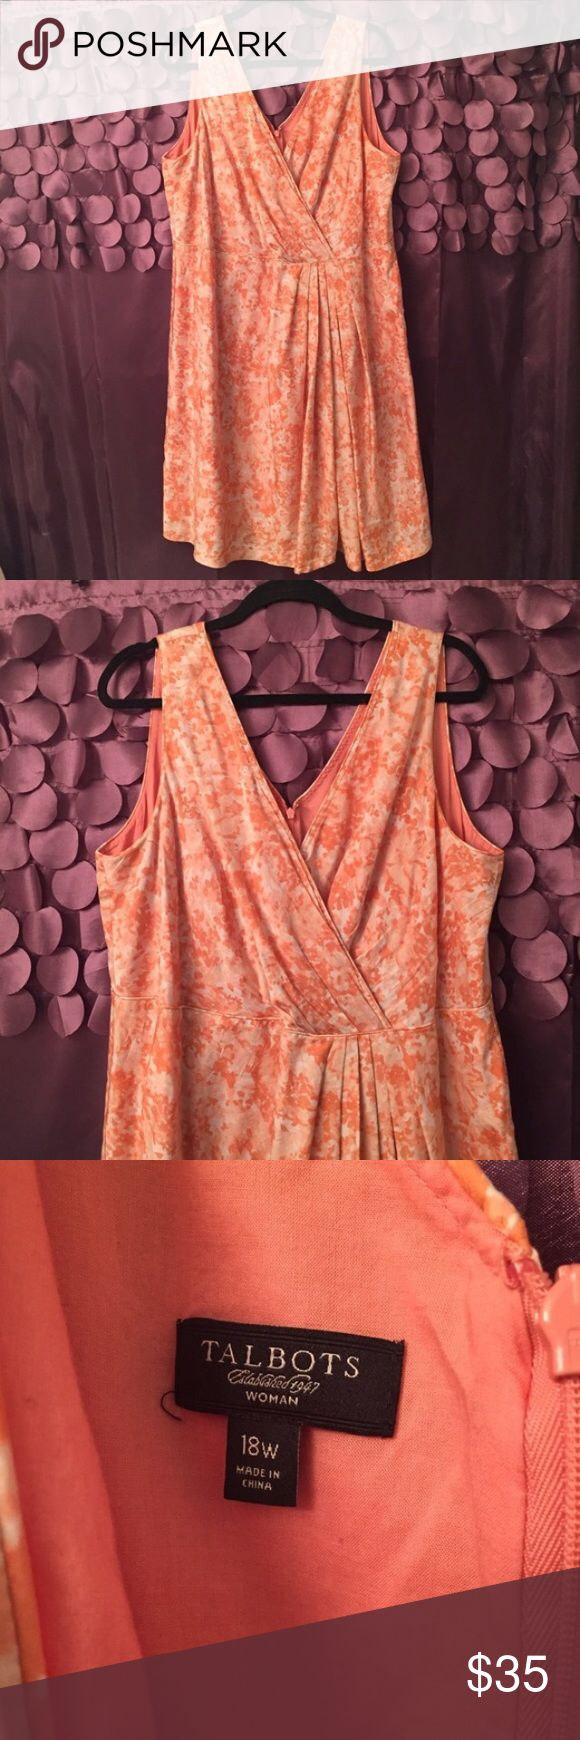 "Talbots Peaches & Cream Plus Size Dress Talbots Peaches and Cream Plus Size Dress. This is a gorgeous dress! It has a beautiful silk like facing with soft peaches and cream print. Incredibly flattering cut especially for curvy women! 17"" invisible zipper at back to close. Talbots Dresses"